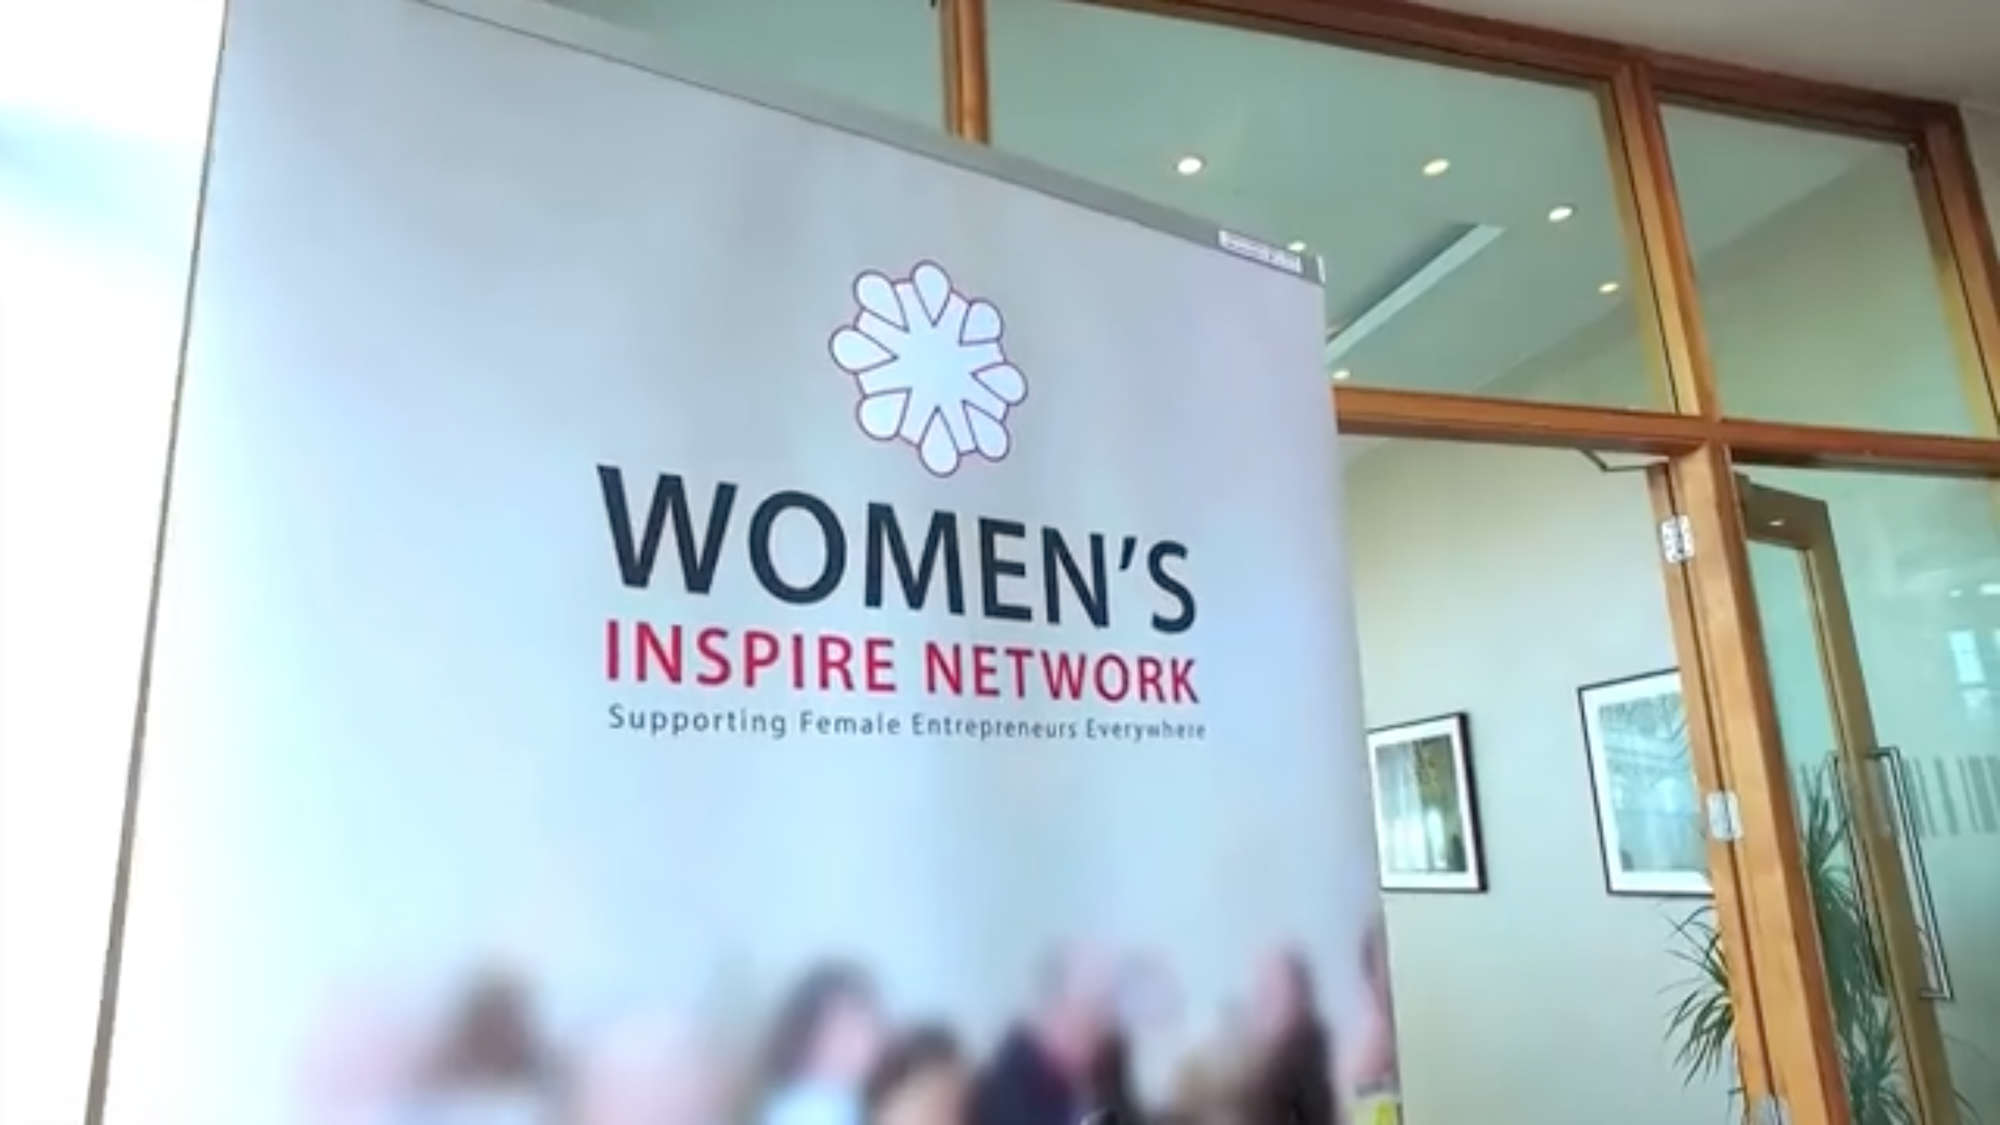 Women's Inspire Network video image